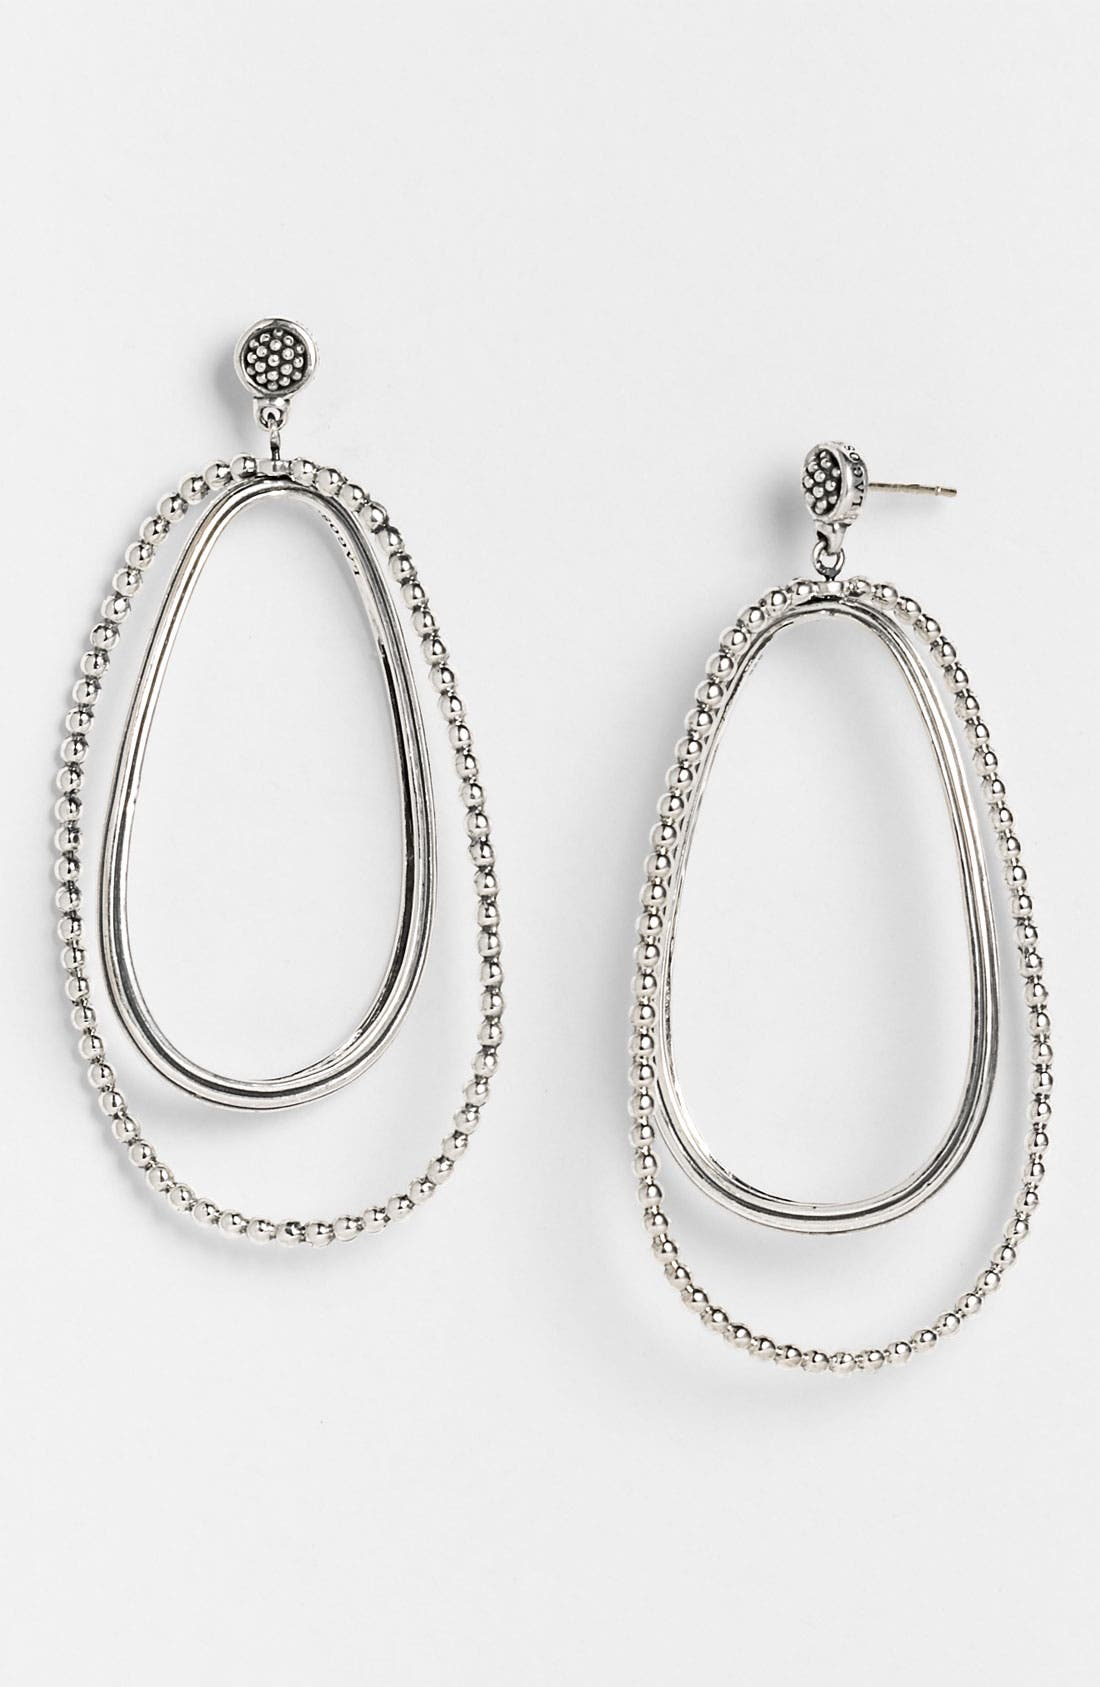 Alternate Image 1 Selected - LAGOS Caviar Oval Twist Statement Earrings